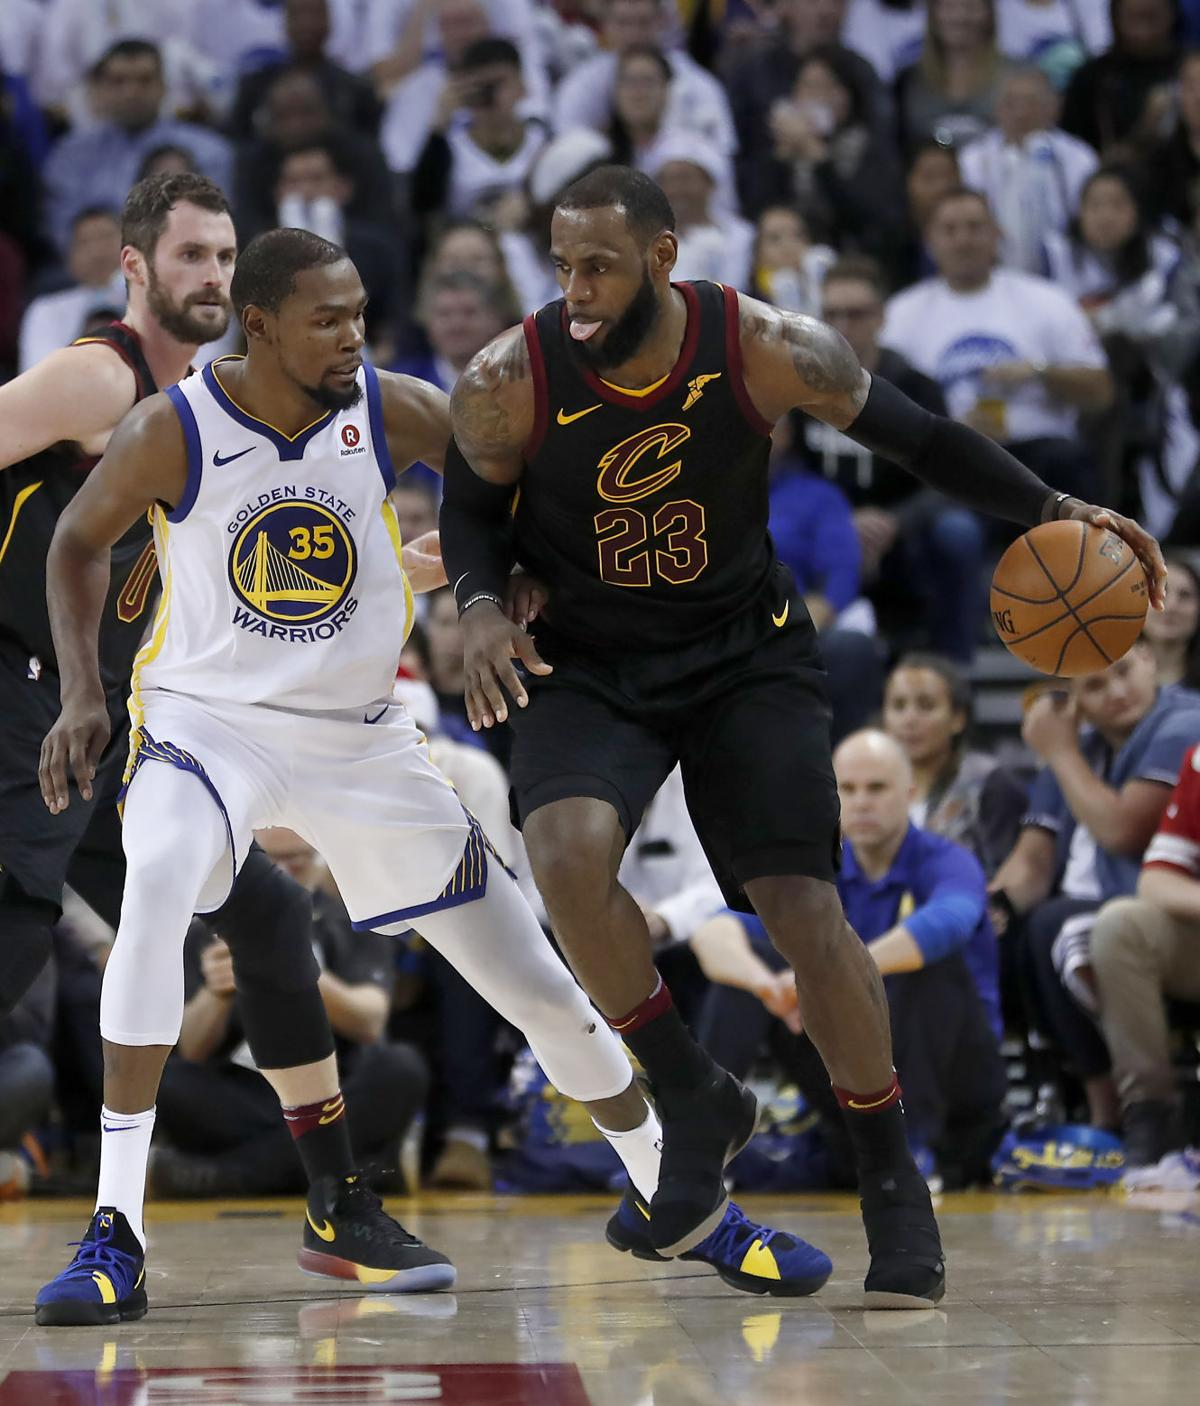 c21363783cf Cleveland Cavaliers forward LeBron James (23) moves the ball around Golden  State Warriors forward Kevin Durant (35) during the second half of Monday s  game ...